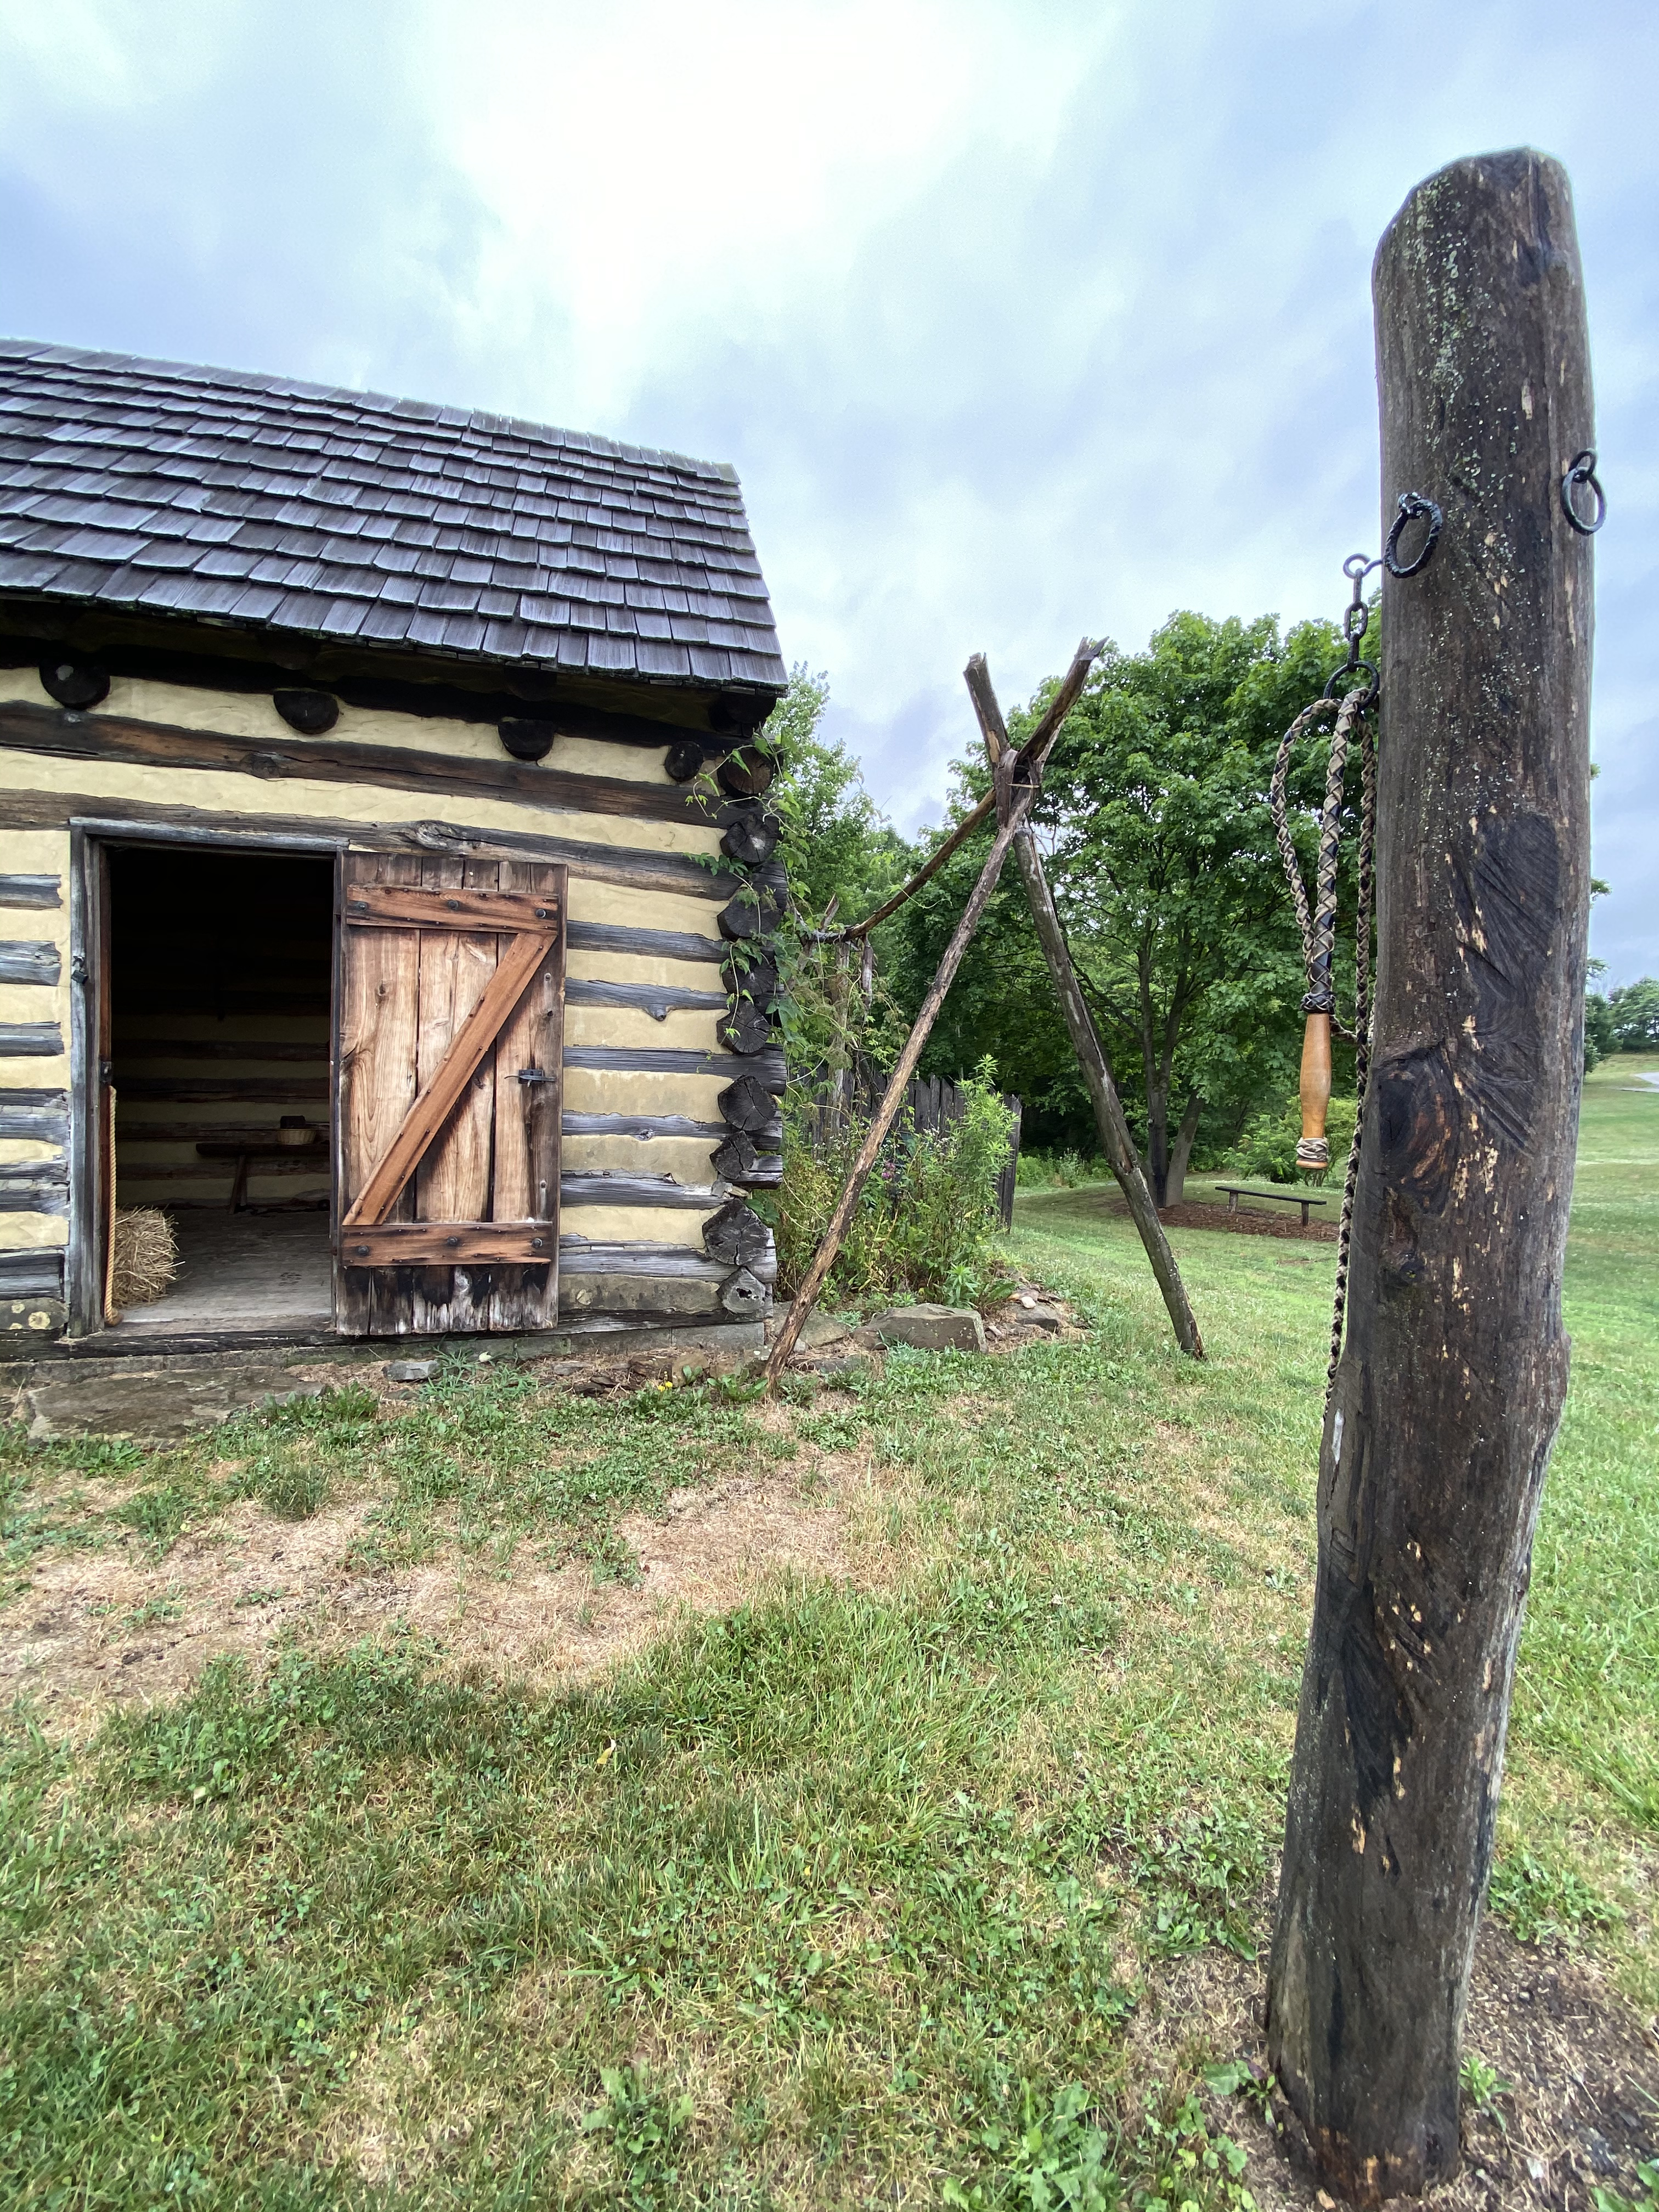 The Gaol and whipping post at Hanna's Town.